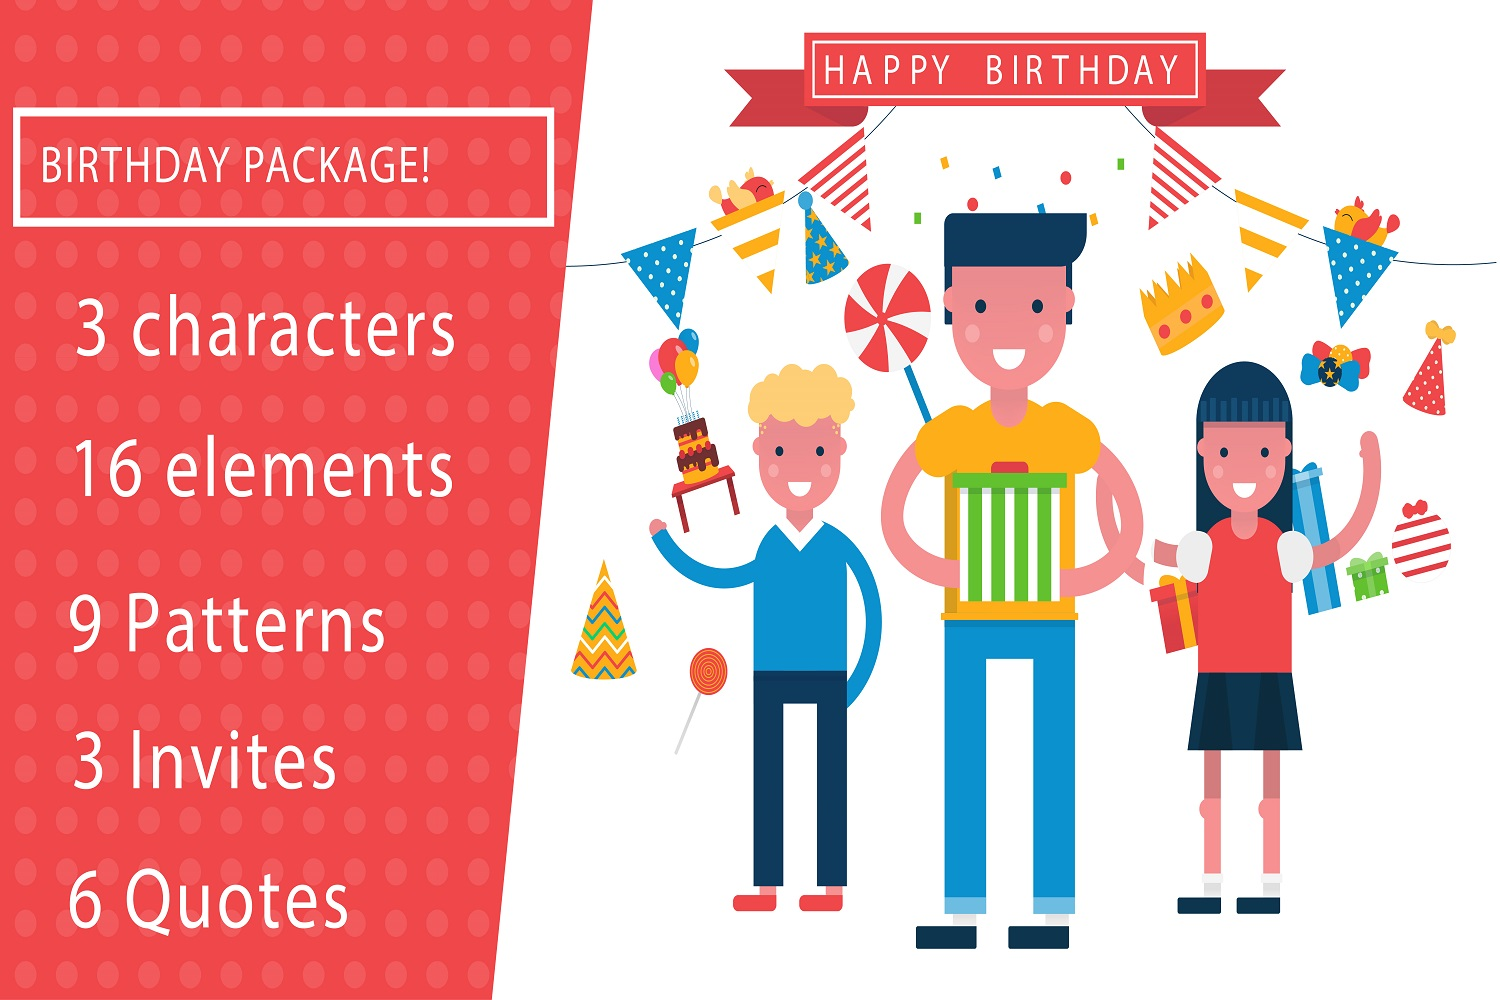 Its a birthday party vector illustration pack example image 1